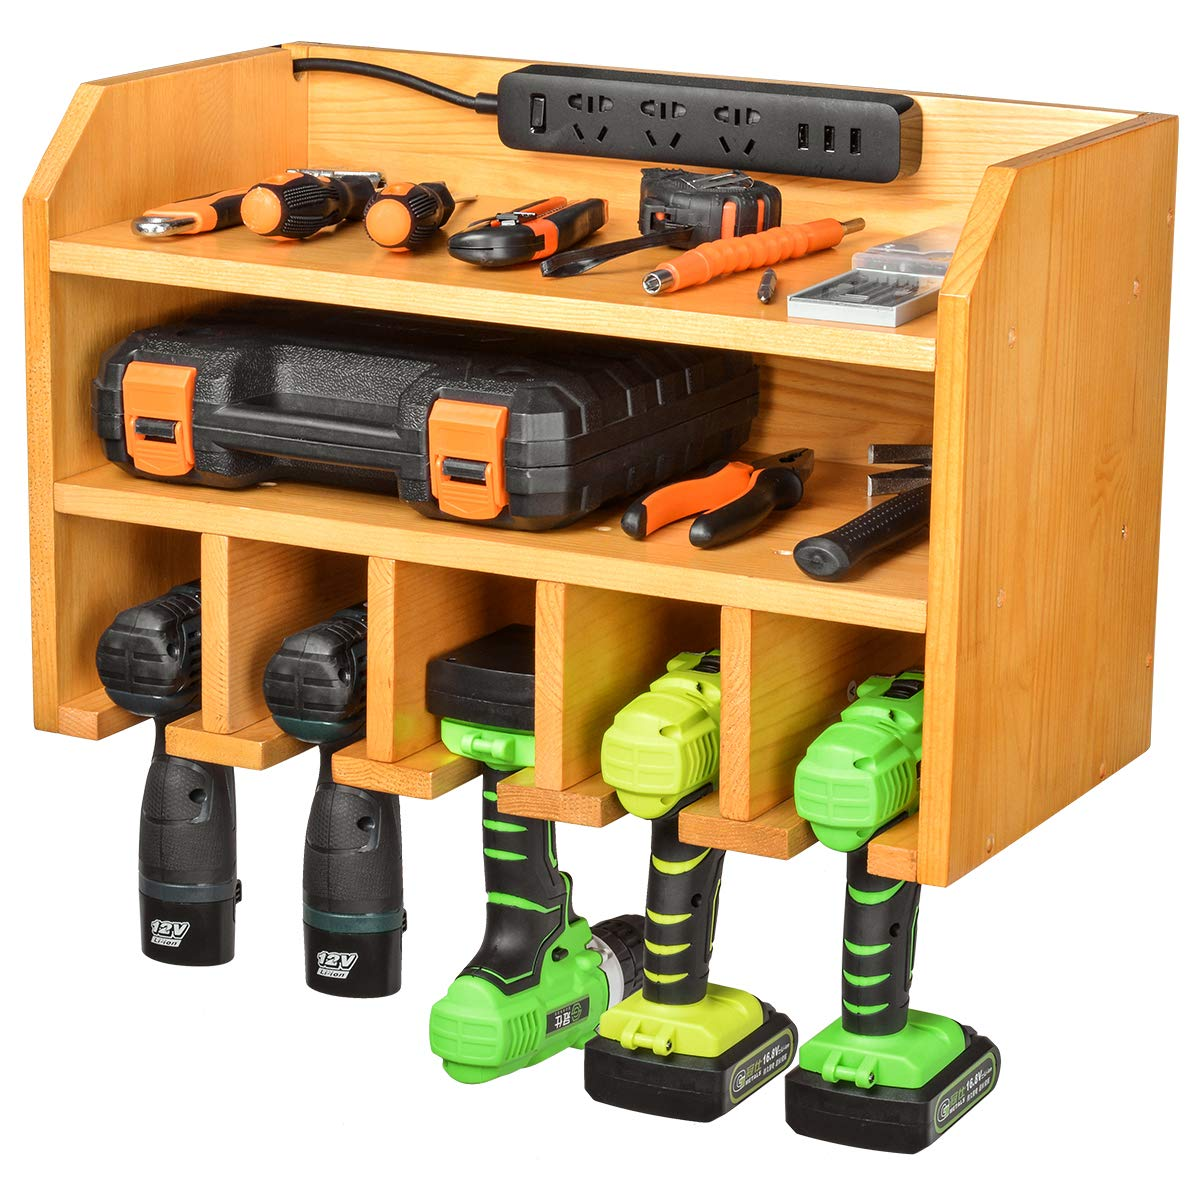 Drill Charging Station | Drill Storage | Wall Mounted Tool Storage Organizer | Power Tool Storage - Power Drill Toolbox Screwdriver Cordless Drill Organizer - Tool, Parts Craft Organizer Wooden